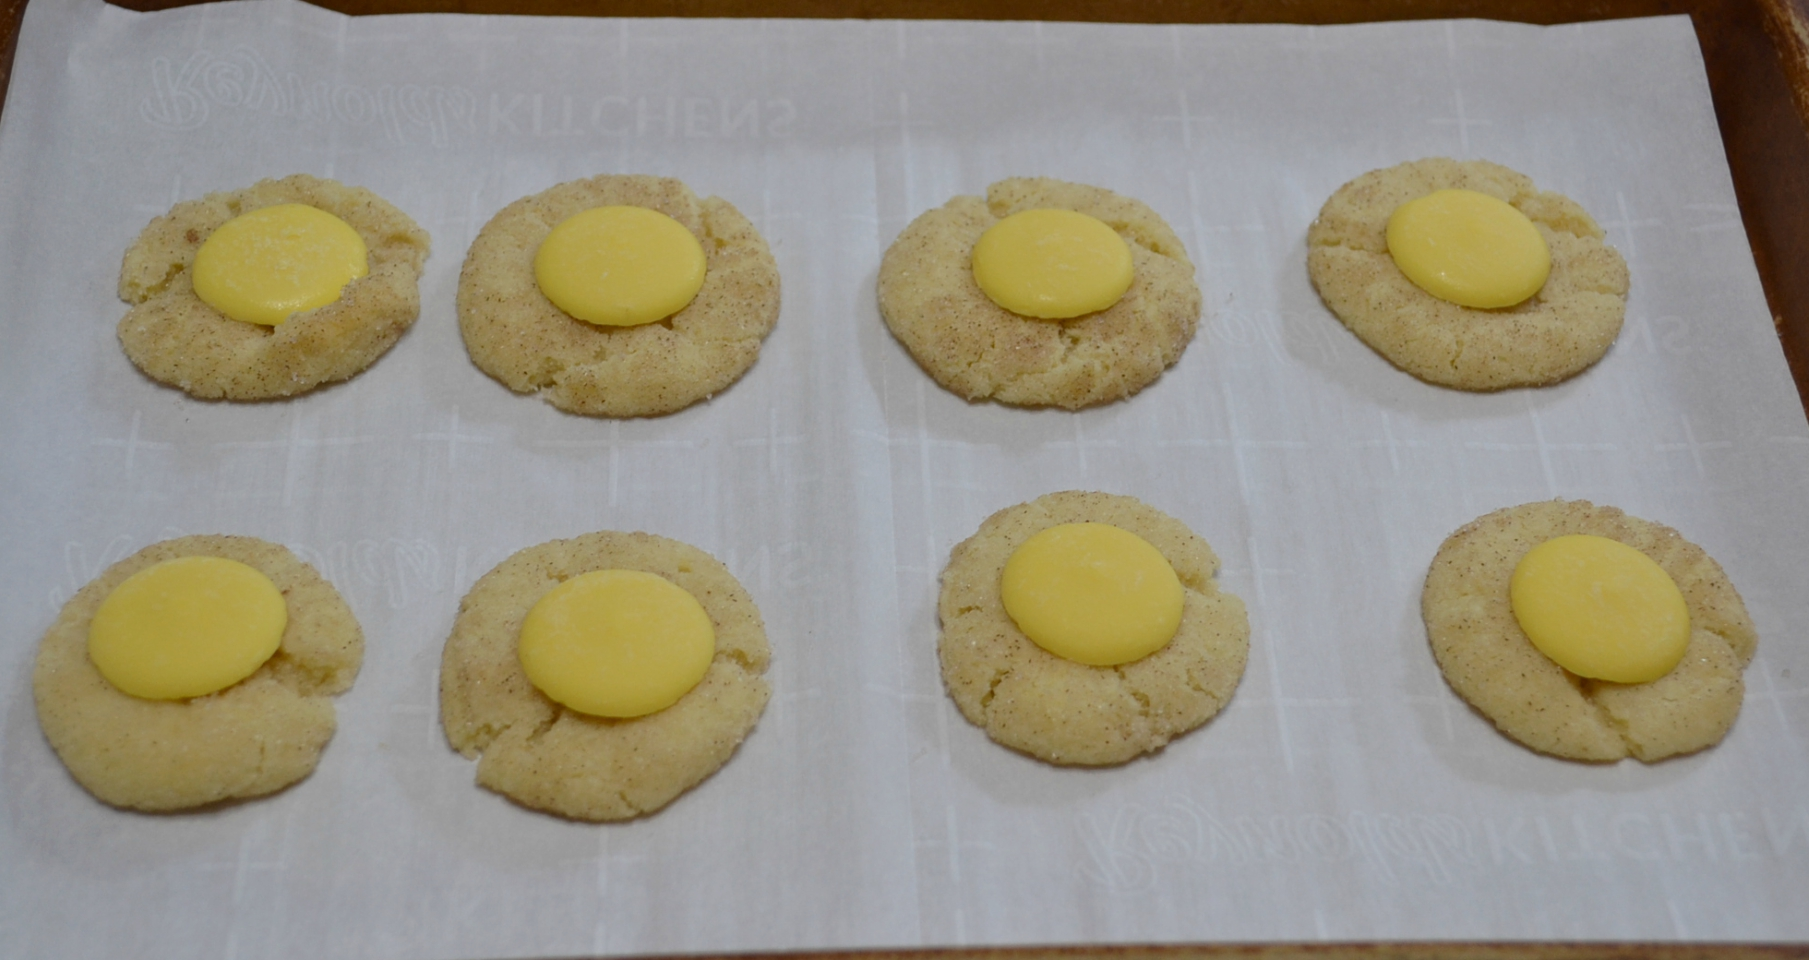 Lemon Burst Snickerdoodle Cookies are a delicious, lemon flavored variation of a snickerdoodle cookie.